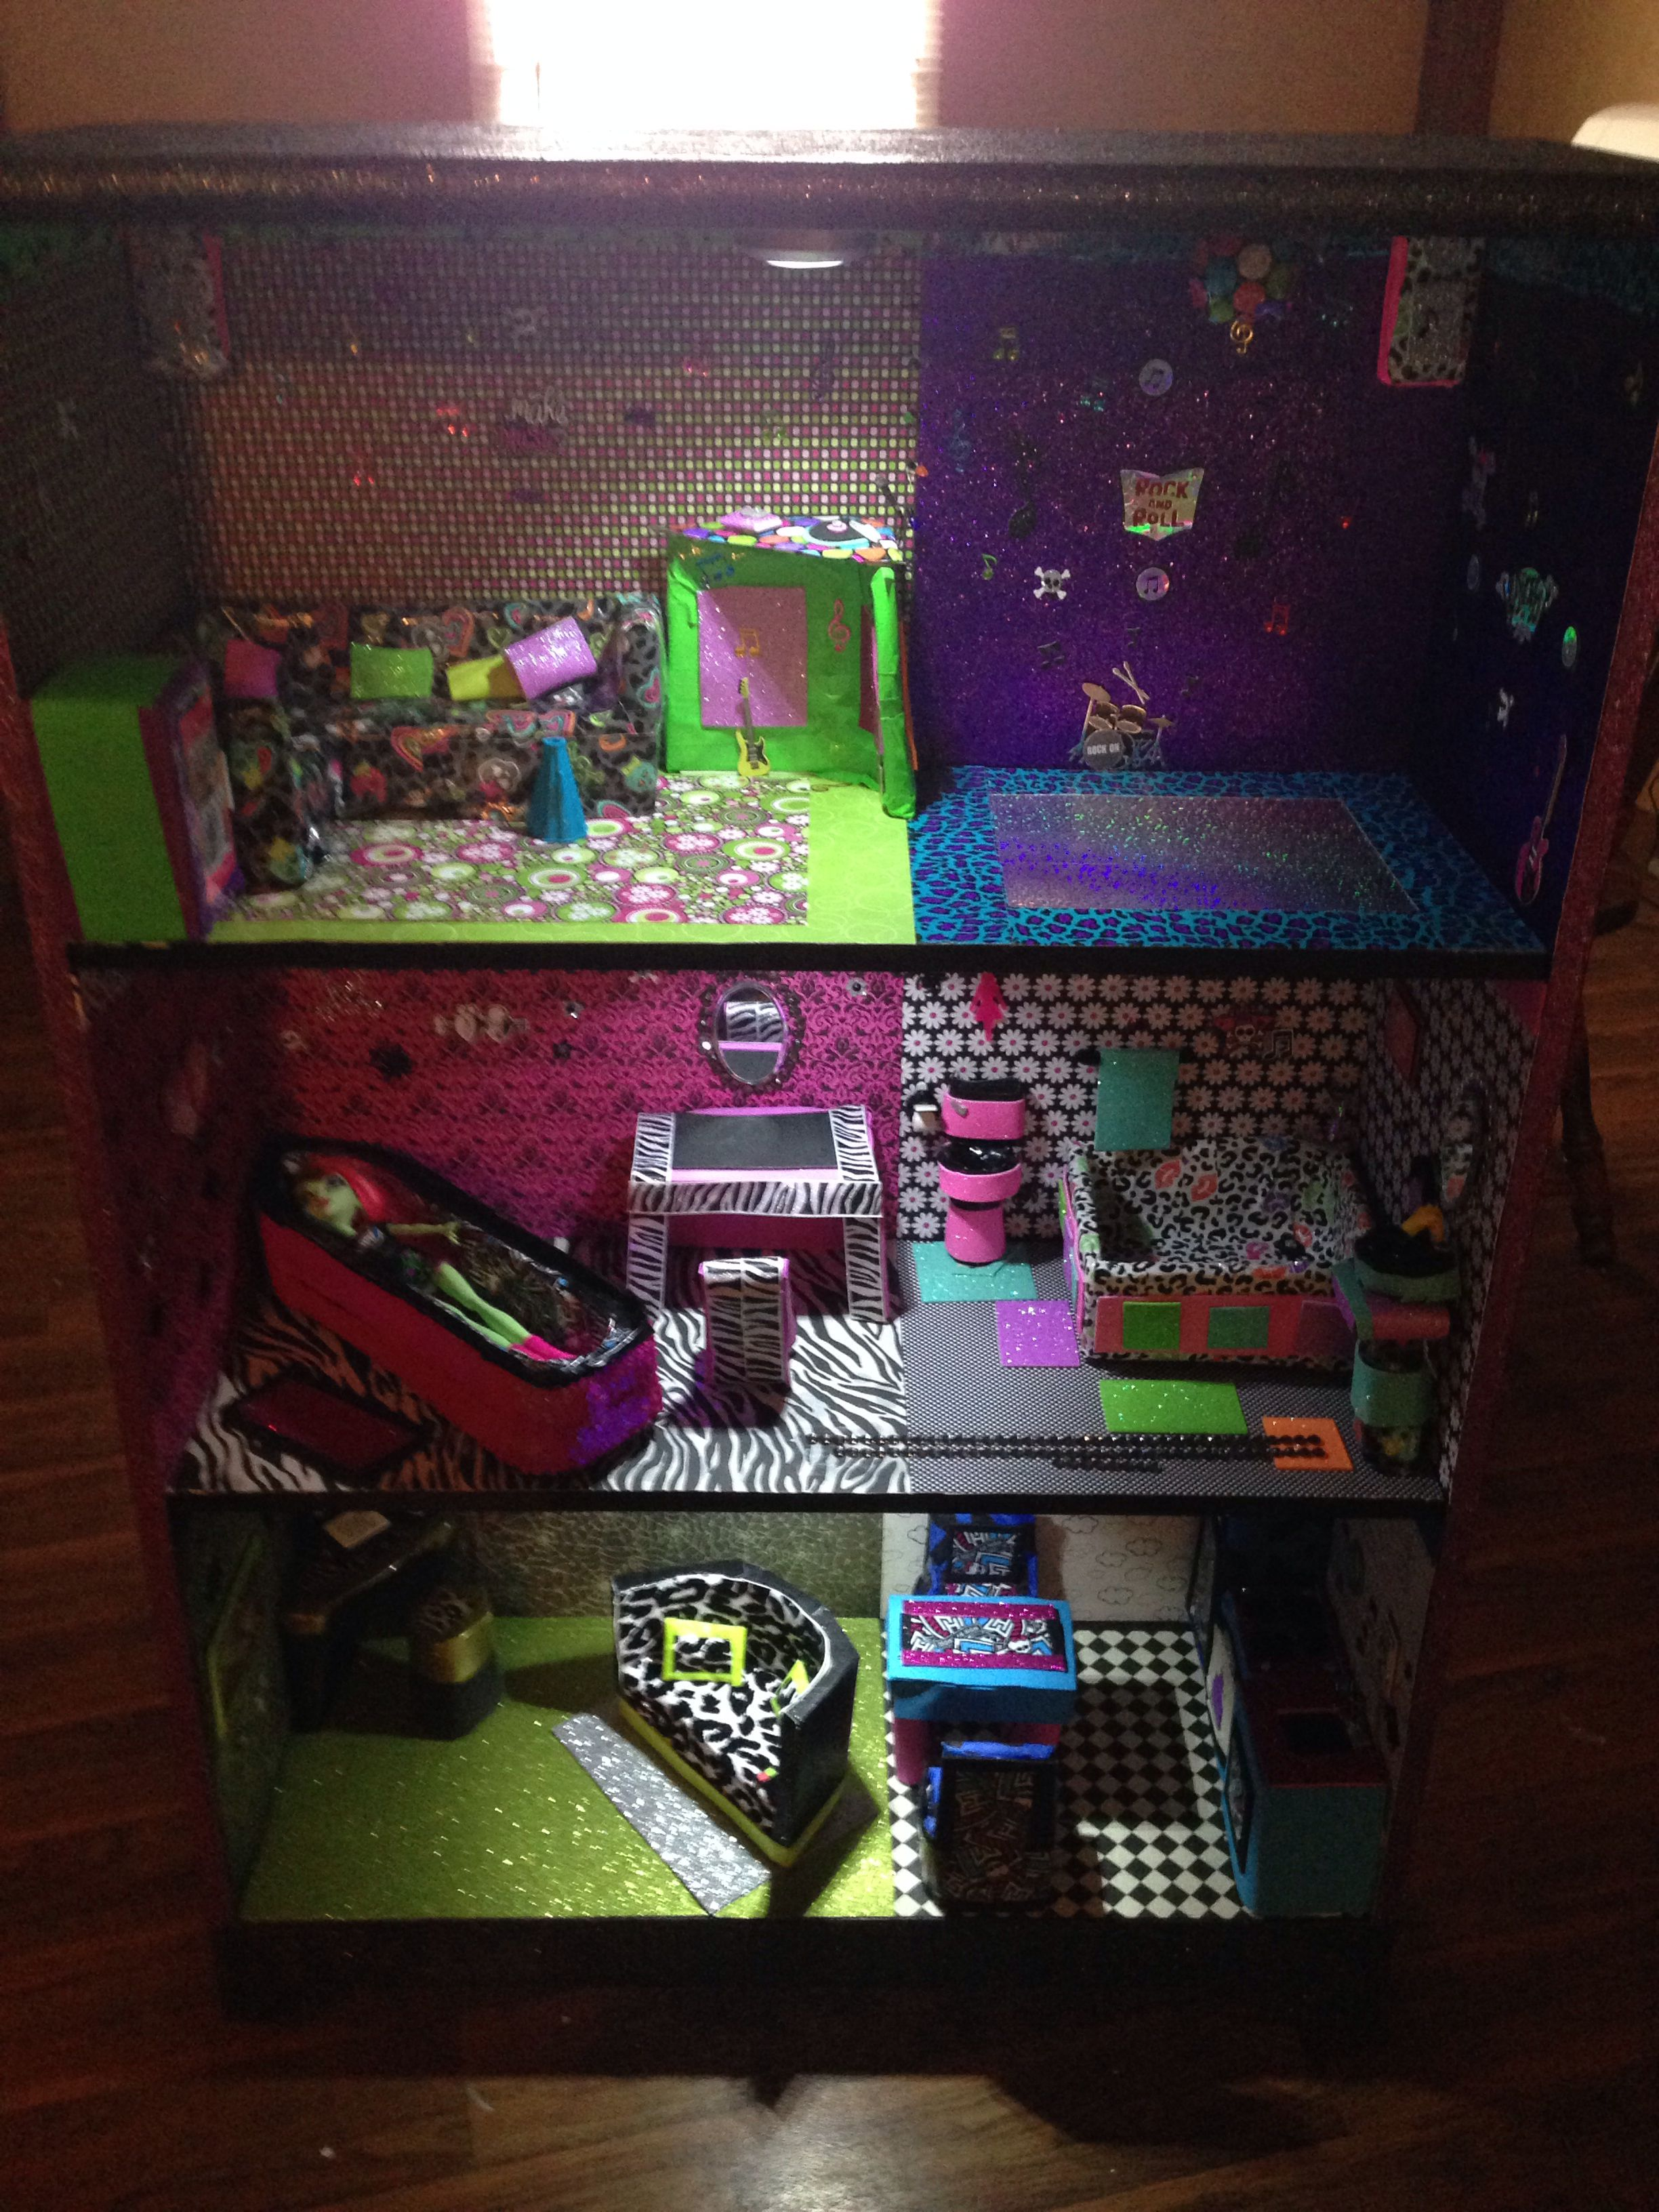 Up Cycled Bookshelf Re Purposes Into Light Up, Monster High Themed Dollhouse